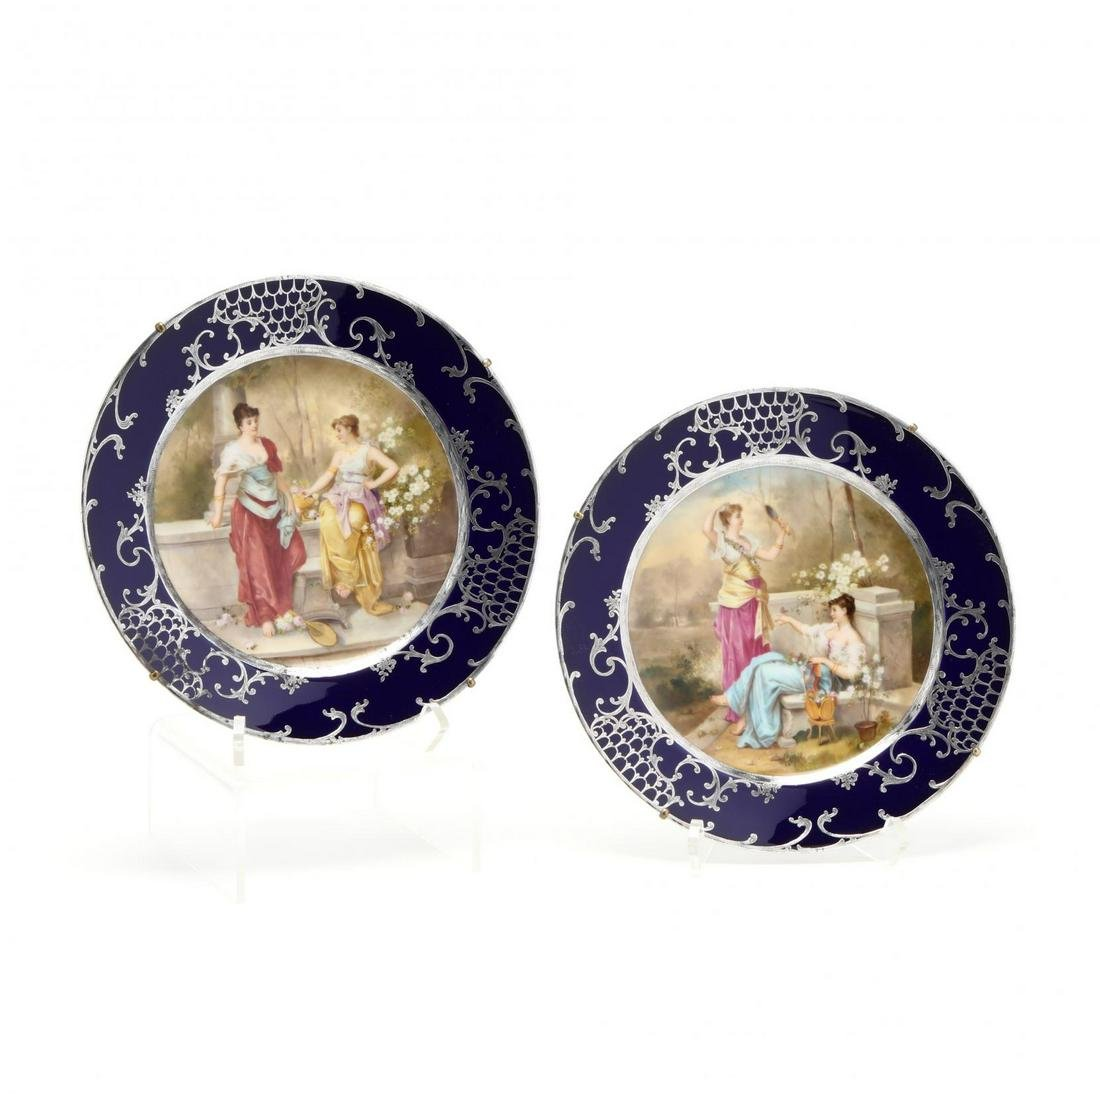 A Rare Pair of Royal Vienna Cabinet Plates with Silver